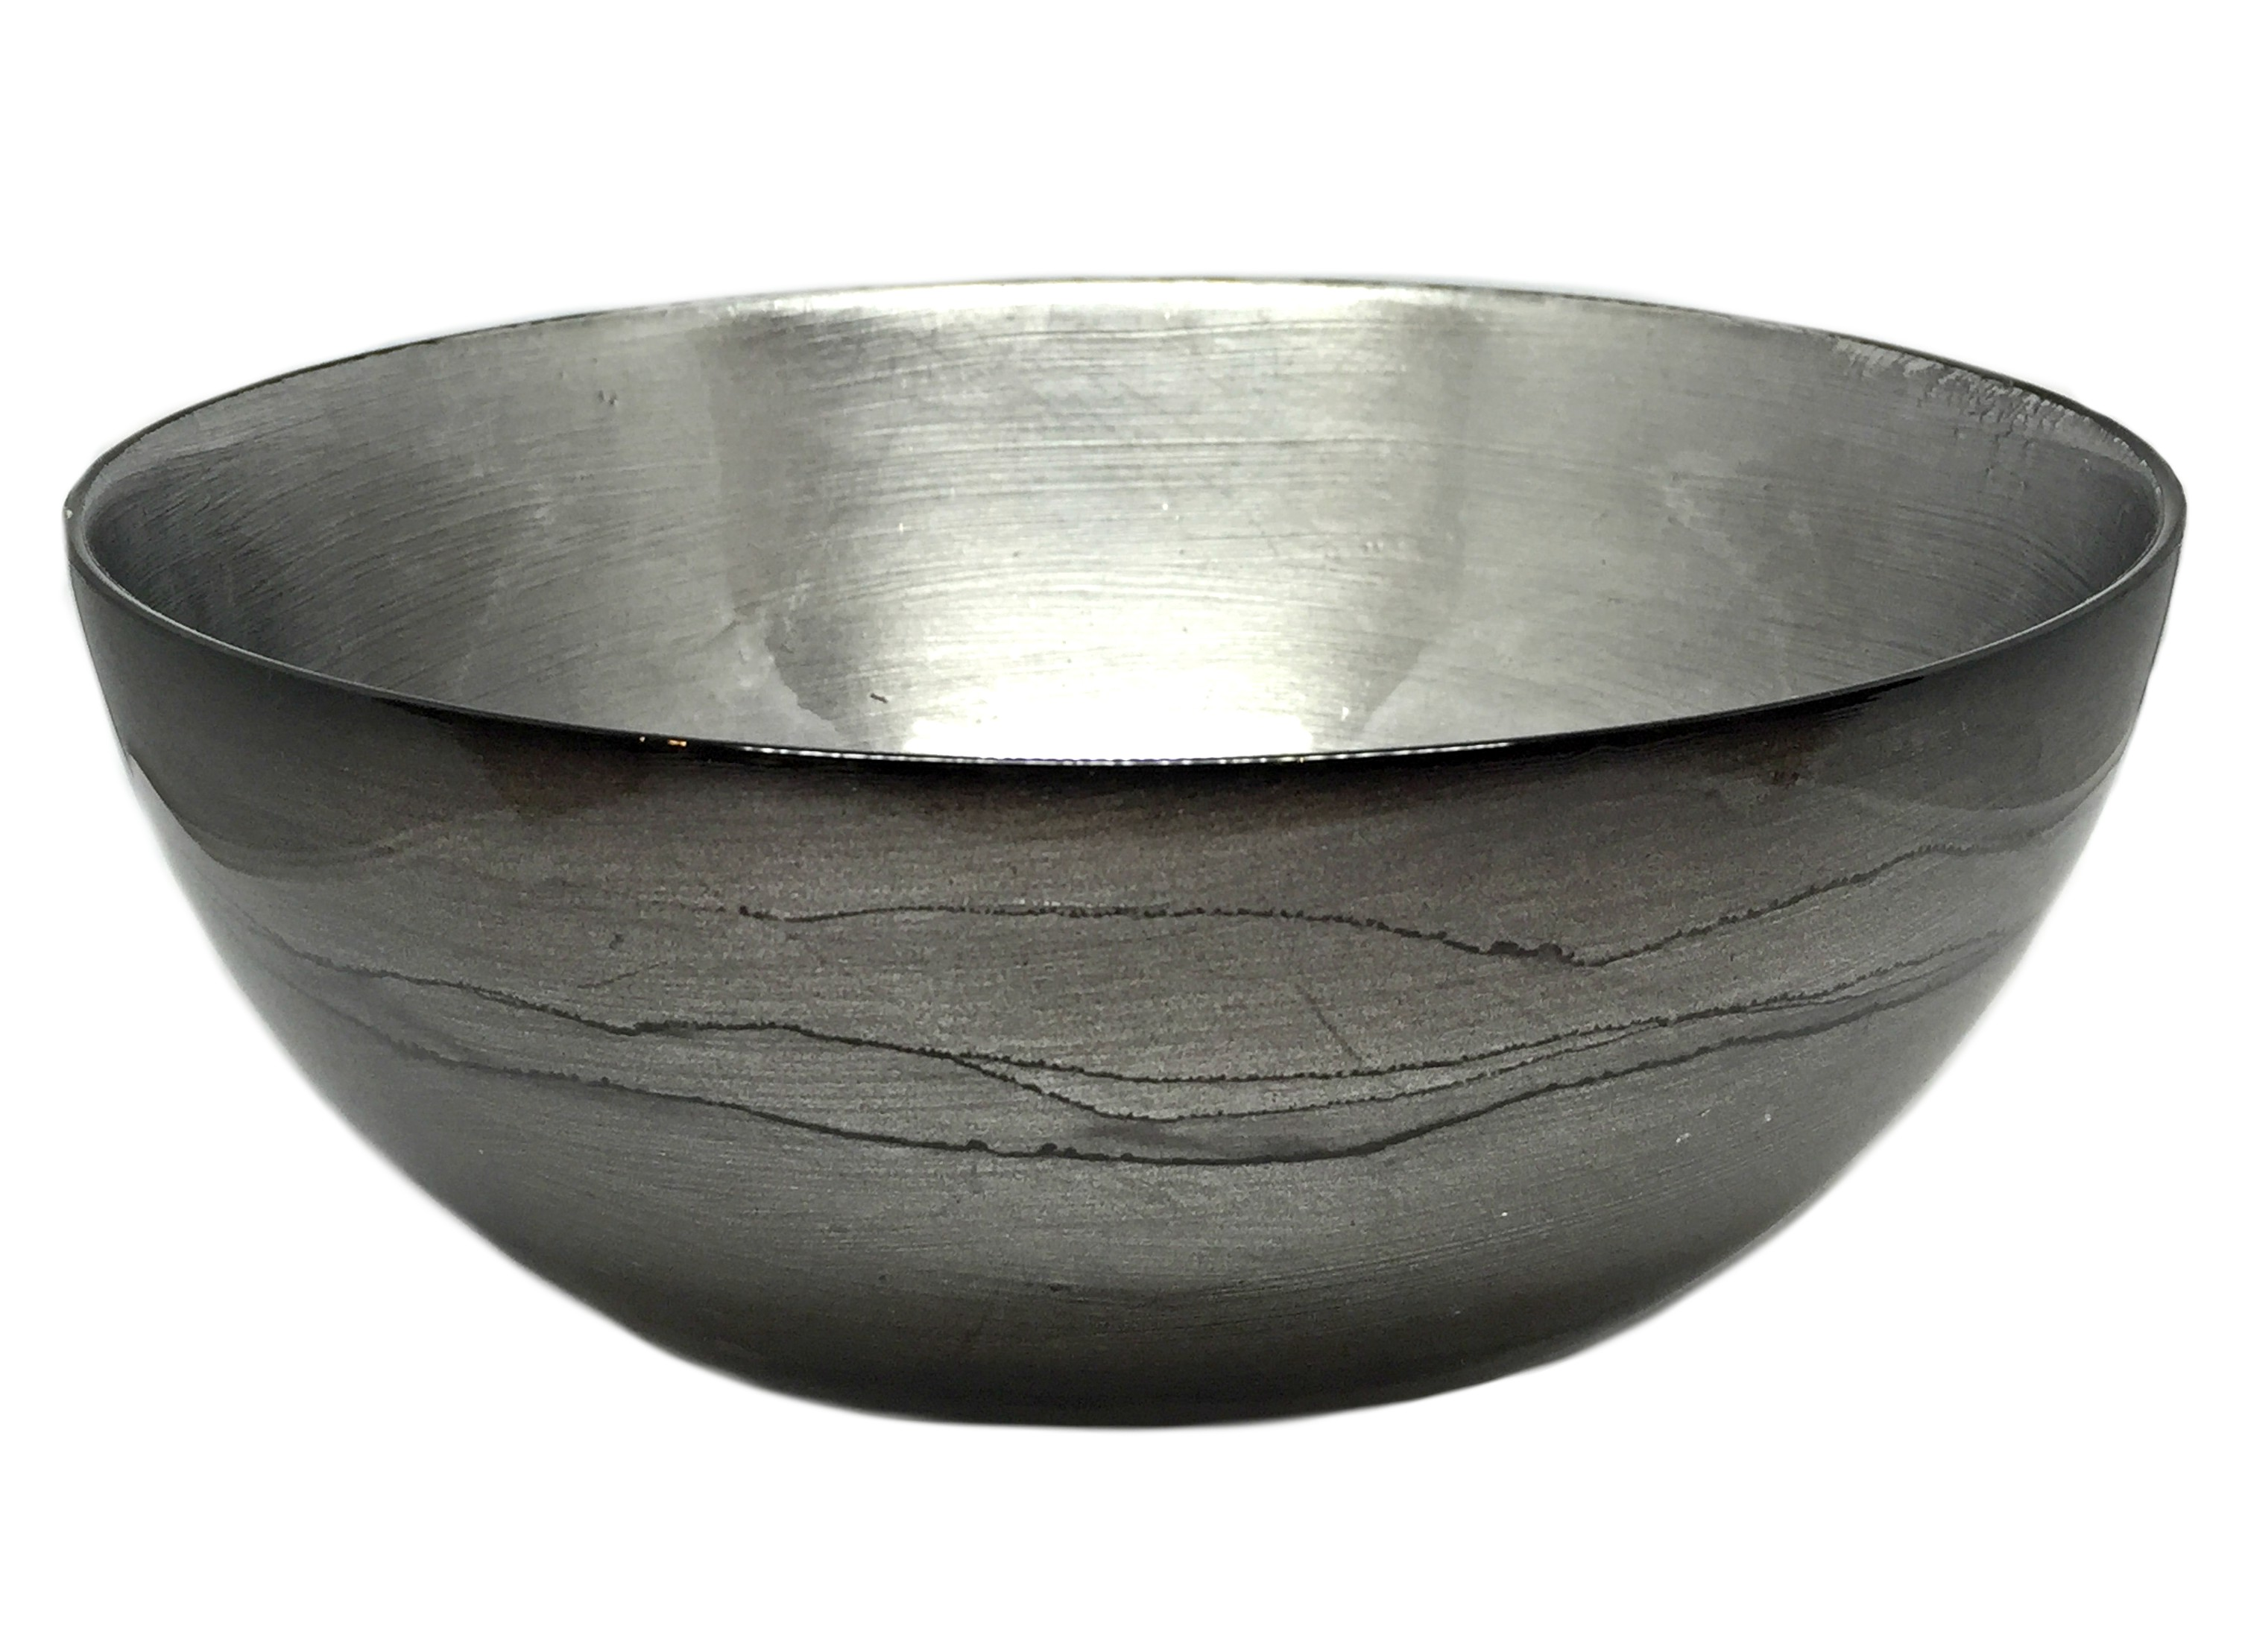 Graff.Small Silver Bowl 2